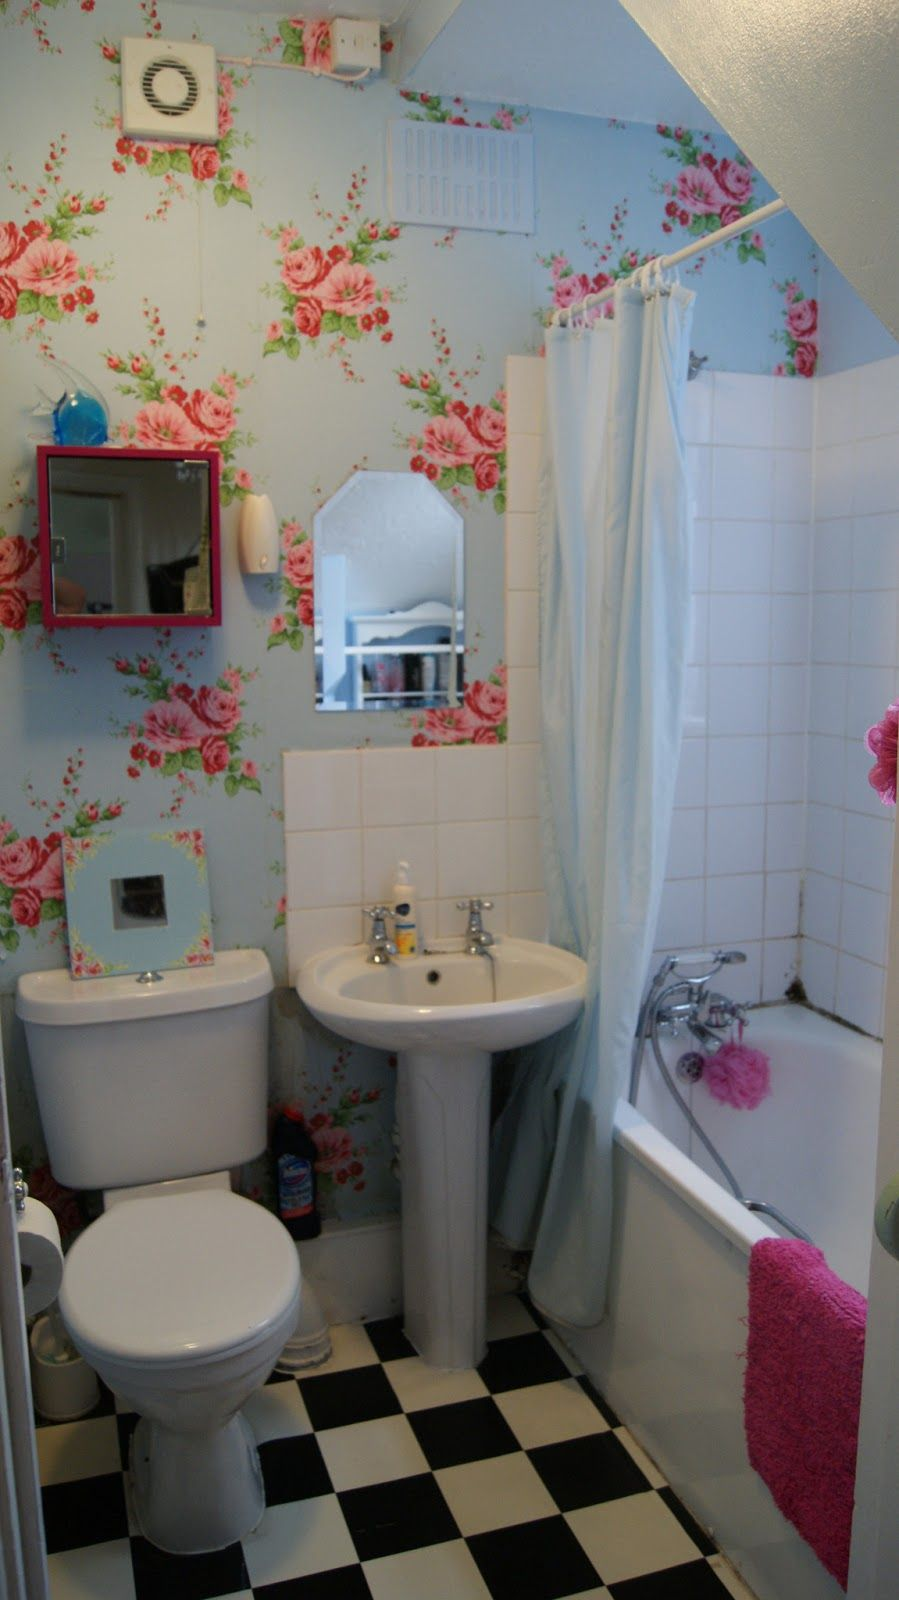 Bathroom designs for small spaces blue - Lavish Very Small Bathroom Design Idea With Blue Wallpaper With Red Floral Motive White Bathtub